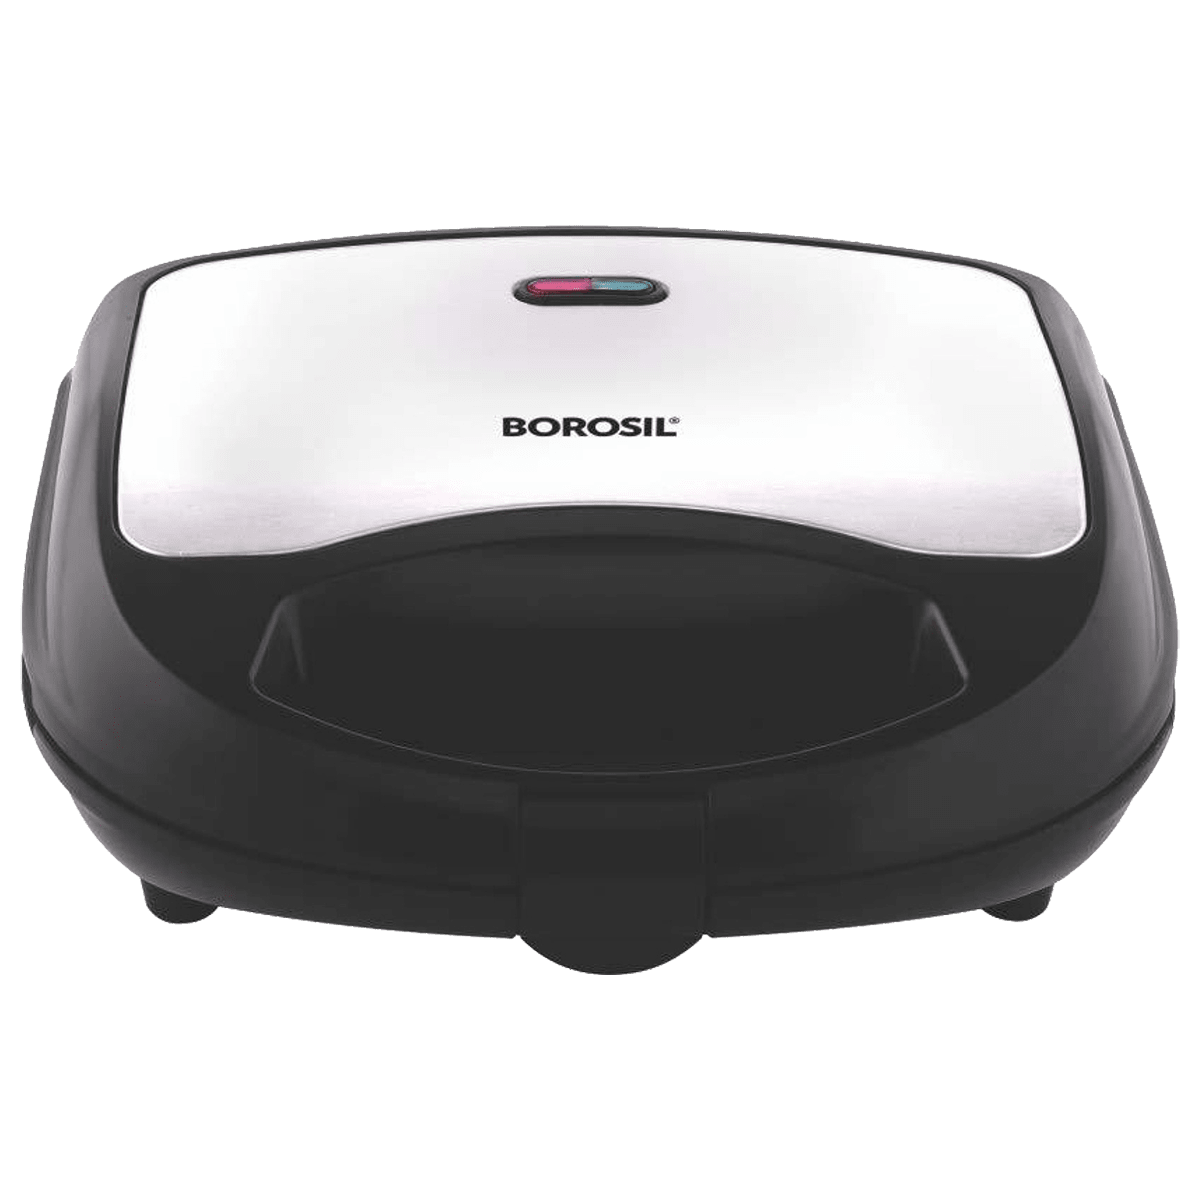 Borosil Neo 700 Watts 2 Slices Automatic Sandwich Maker (BSM70NDS15, Silver)